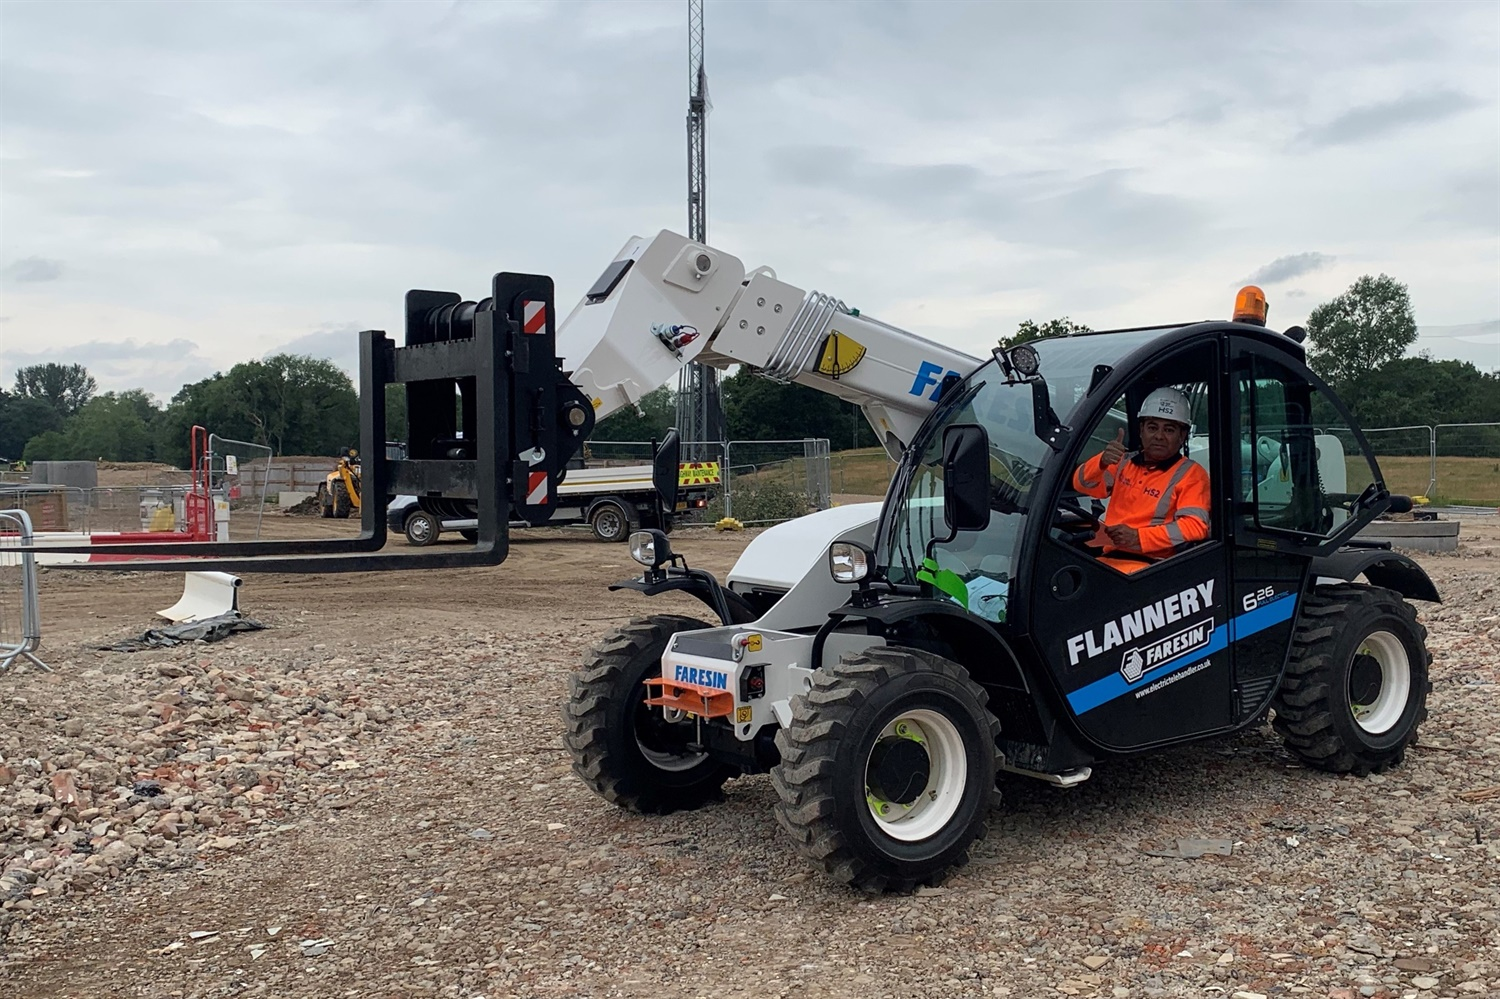 HS2 trials UK's first electric forklift